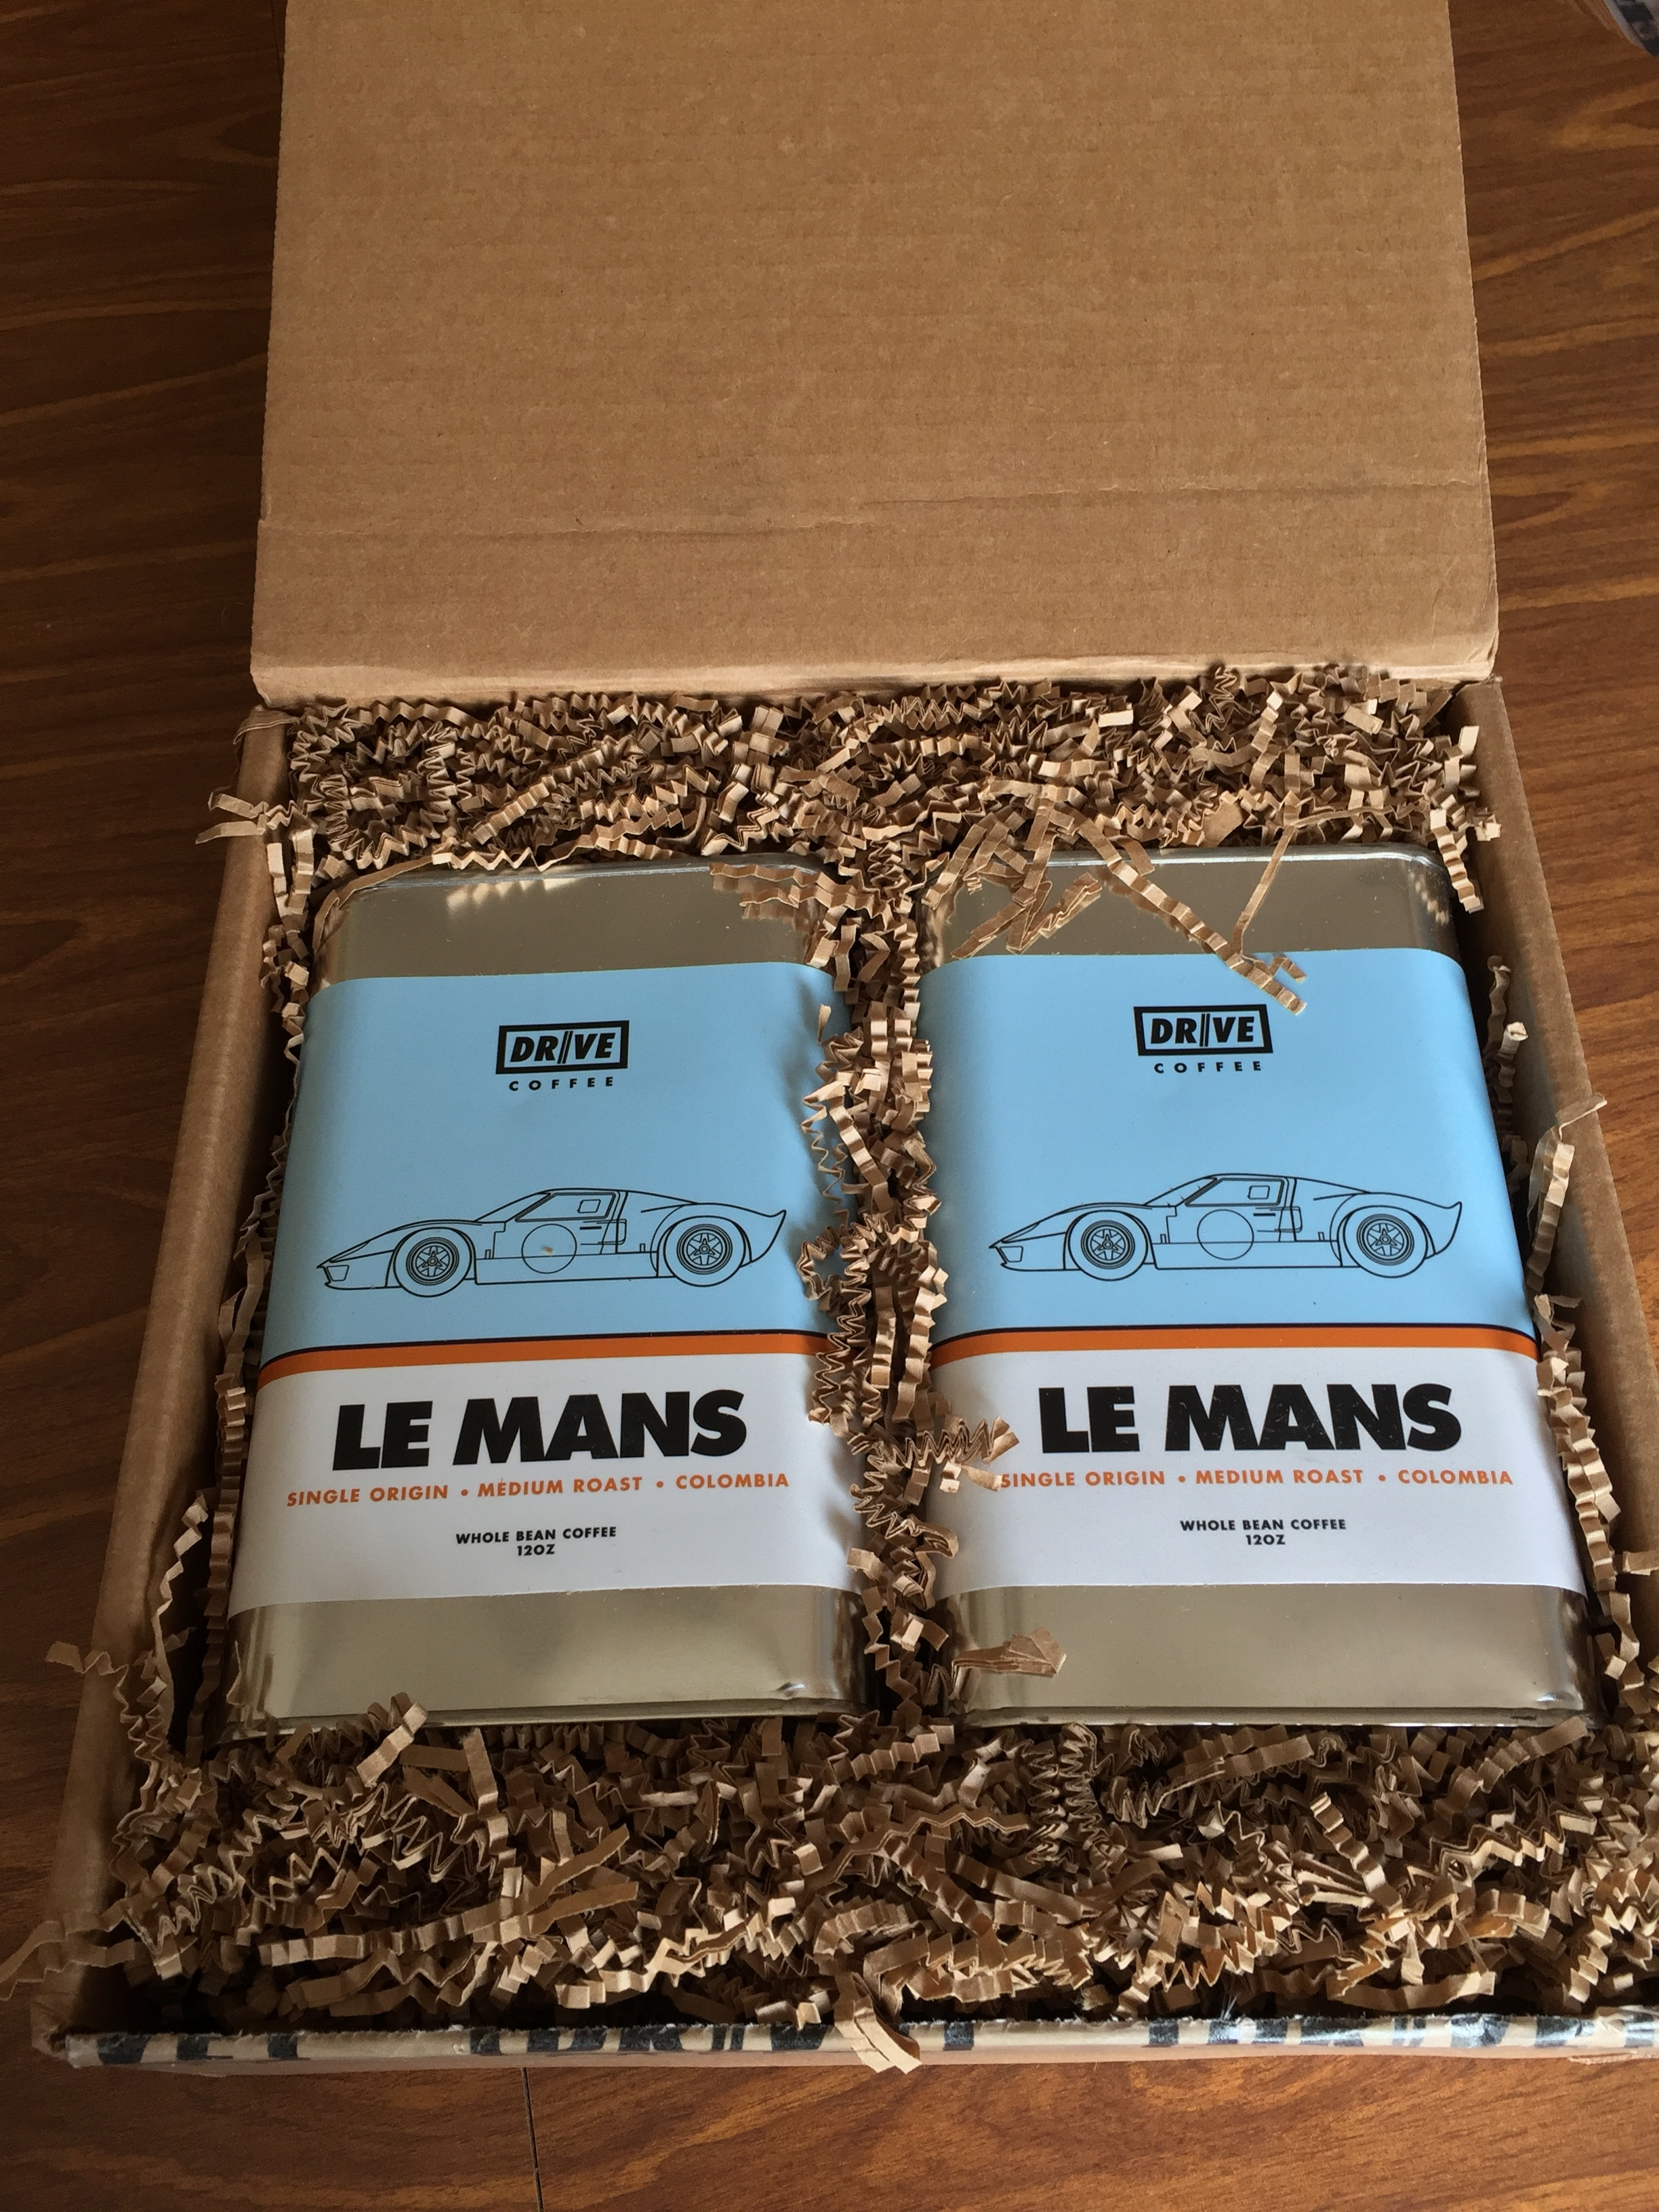 Two oilcans of Drive Coffee's Le Mans single origin medium roast.